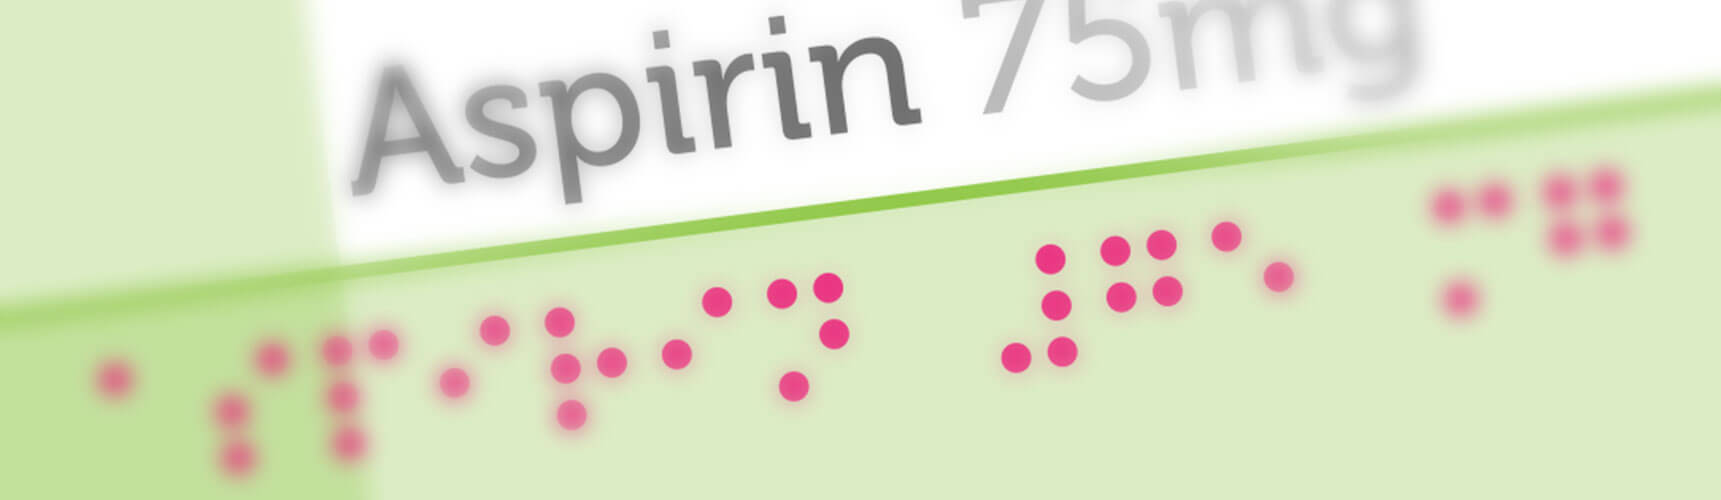 Braille font on pharmaceutical packaging artwork